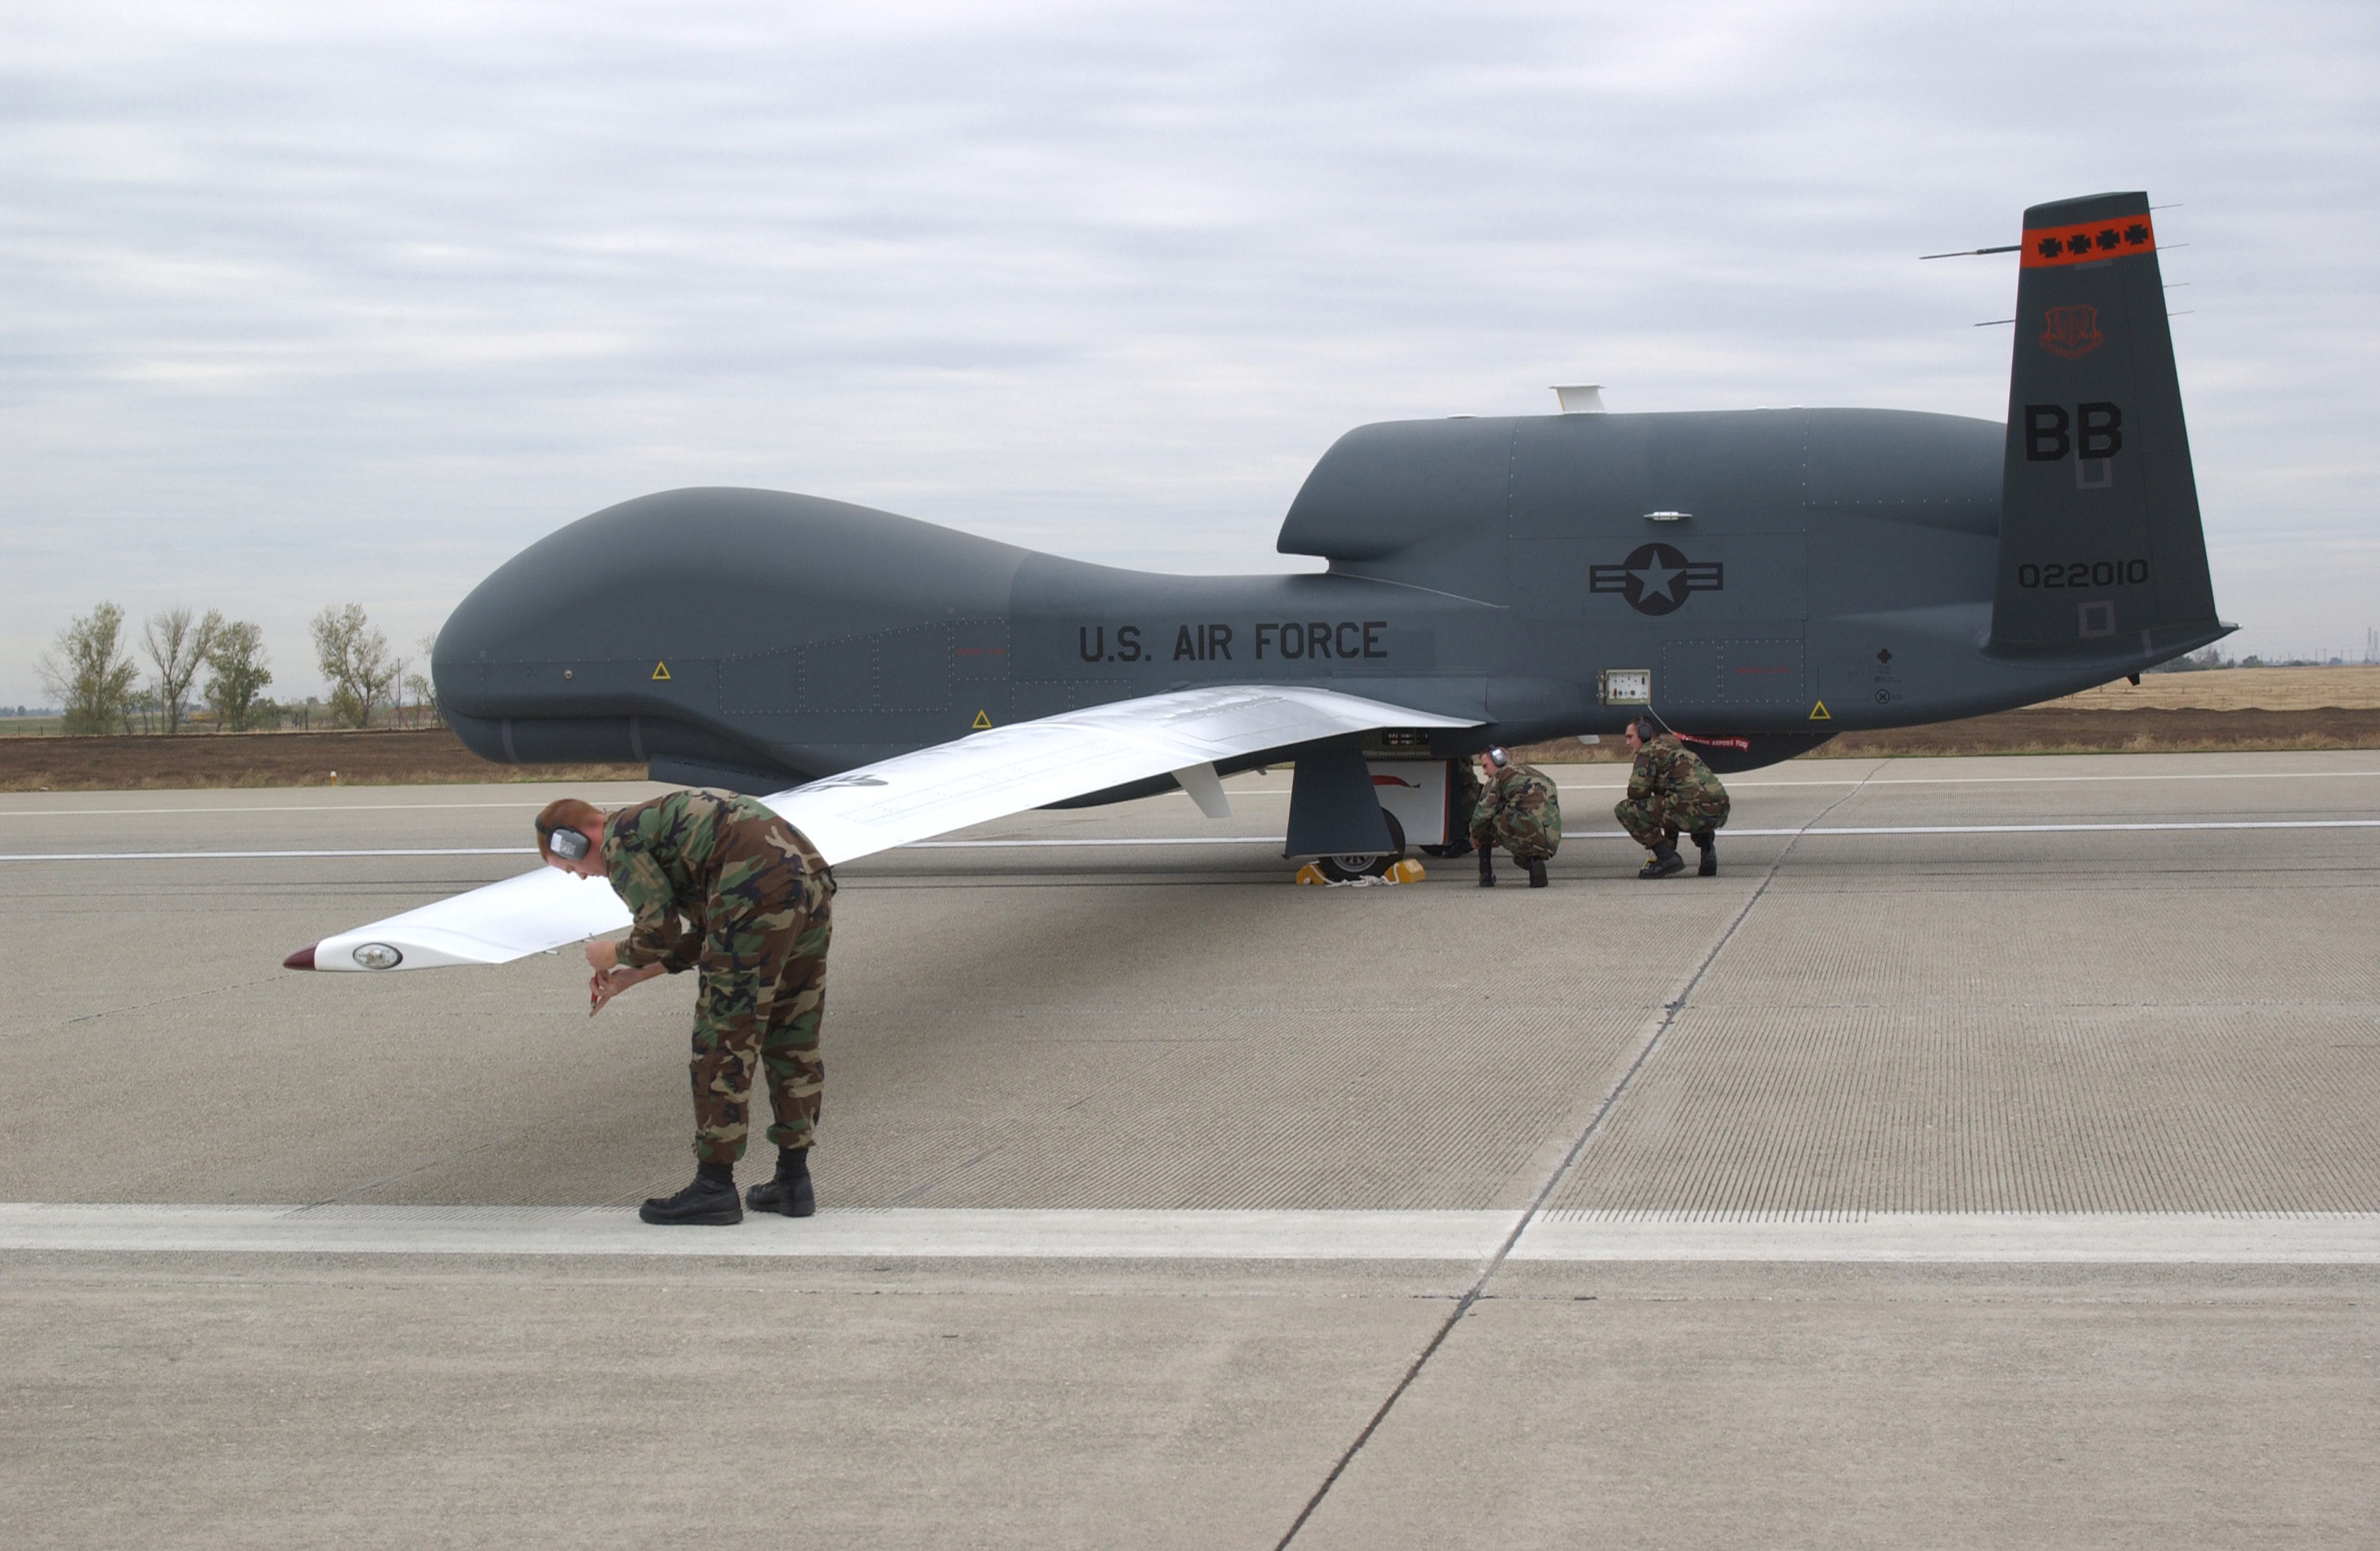 Hey Guise Check Out This Drone Painted To Look Like An American